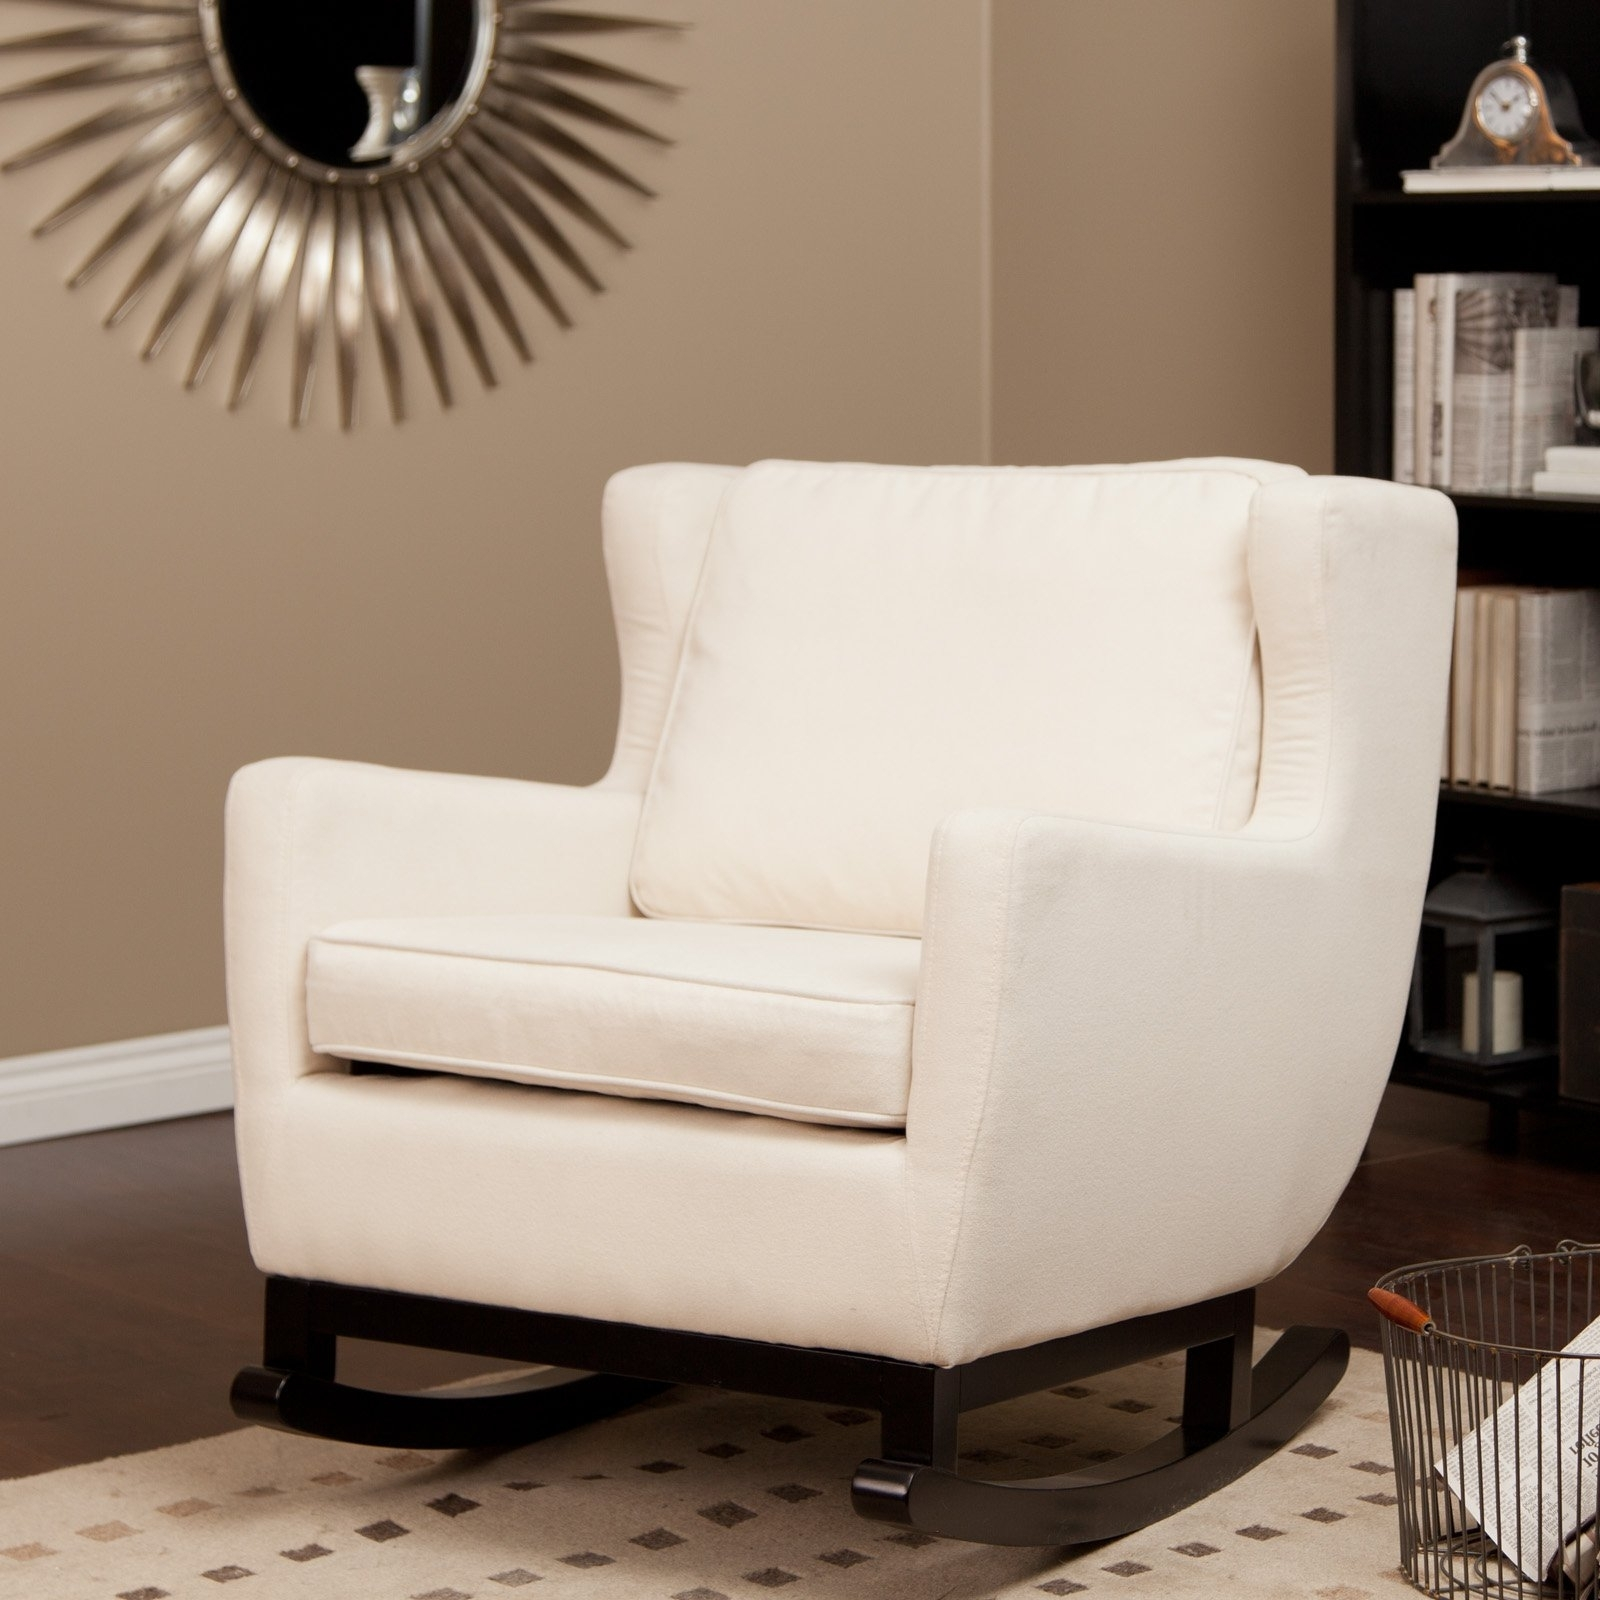 Livingroom : Winsome Rocking Chair At Modern Interior Chairs With Widely Used Rocking Chairs For Living Room (View 12 of 20)